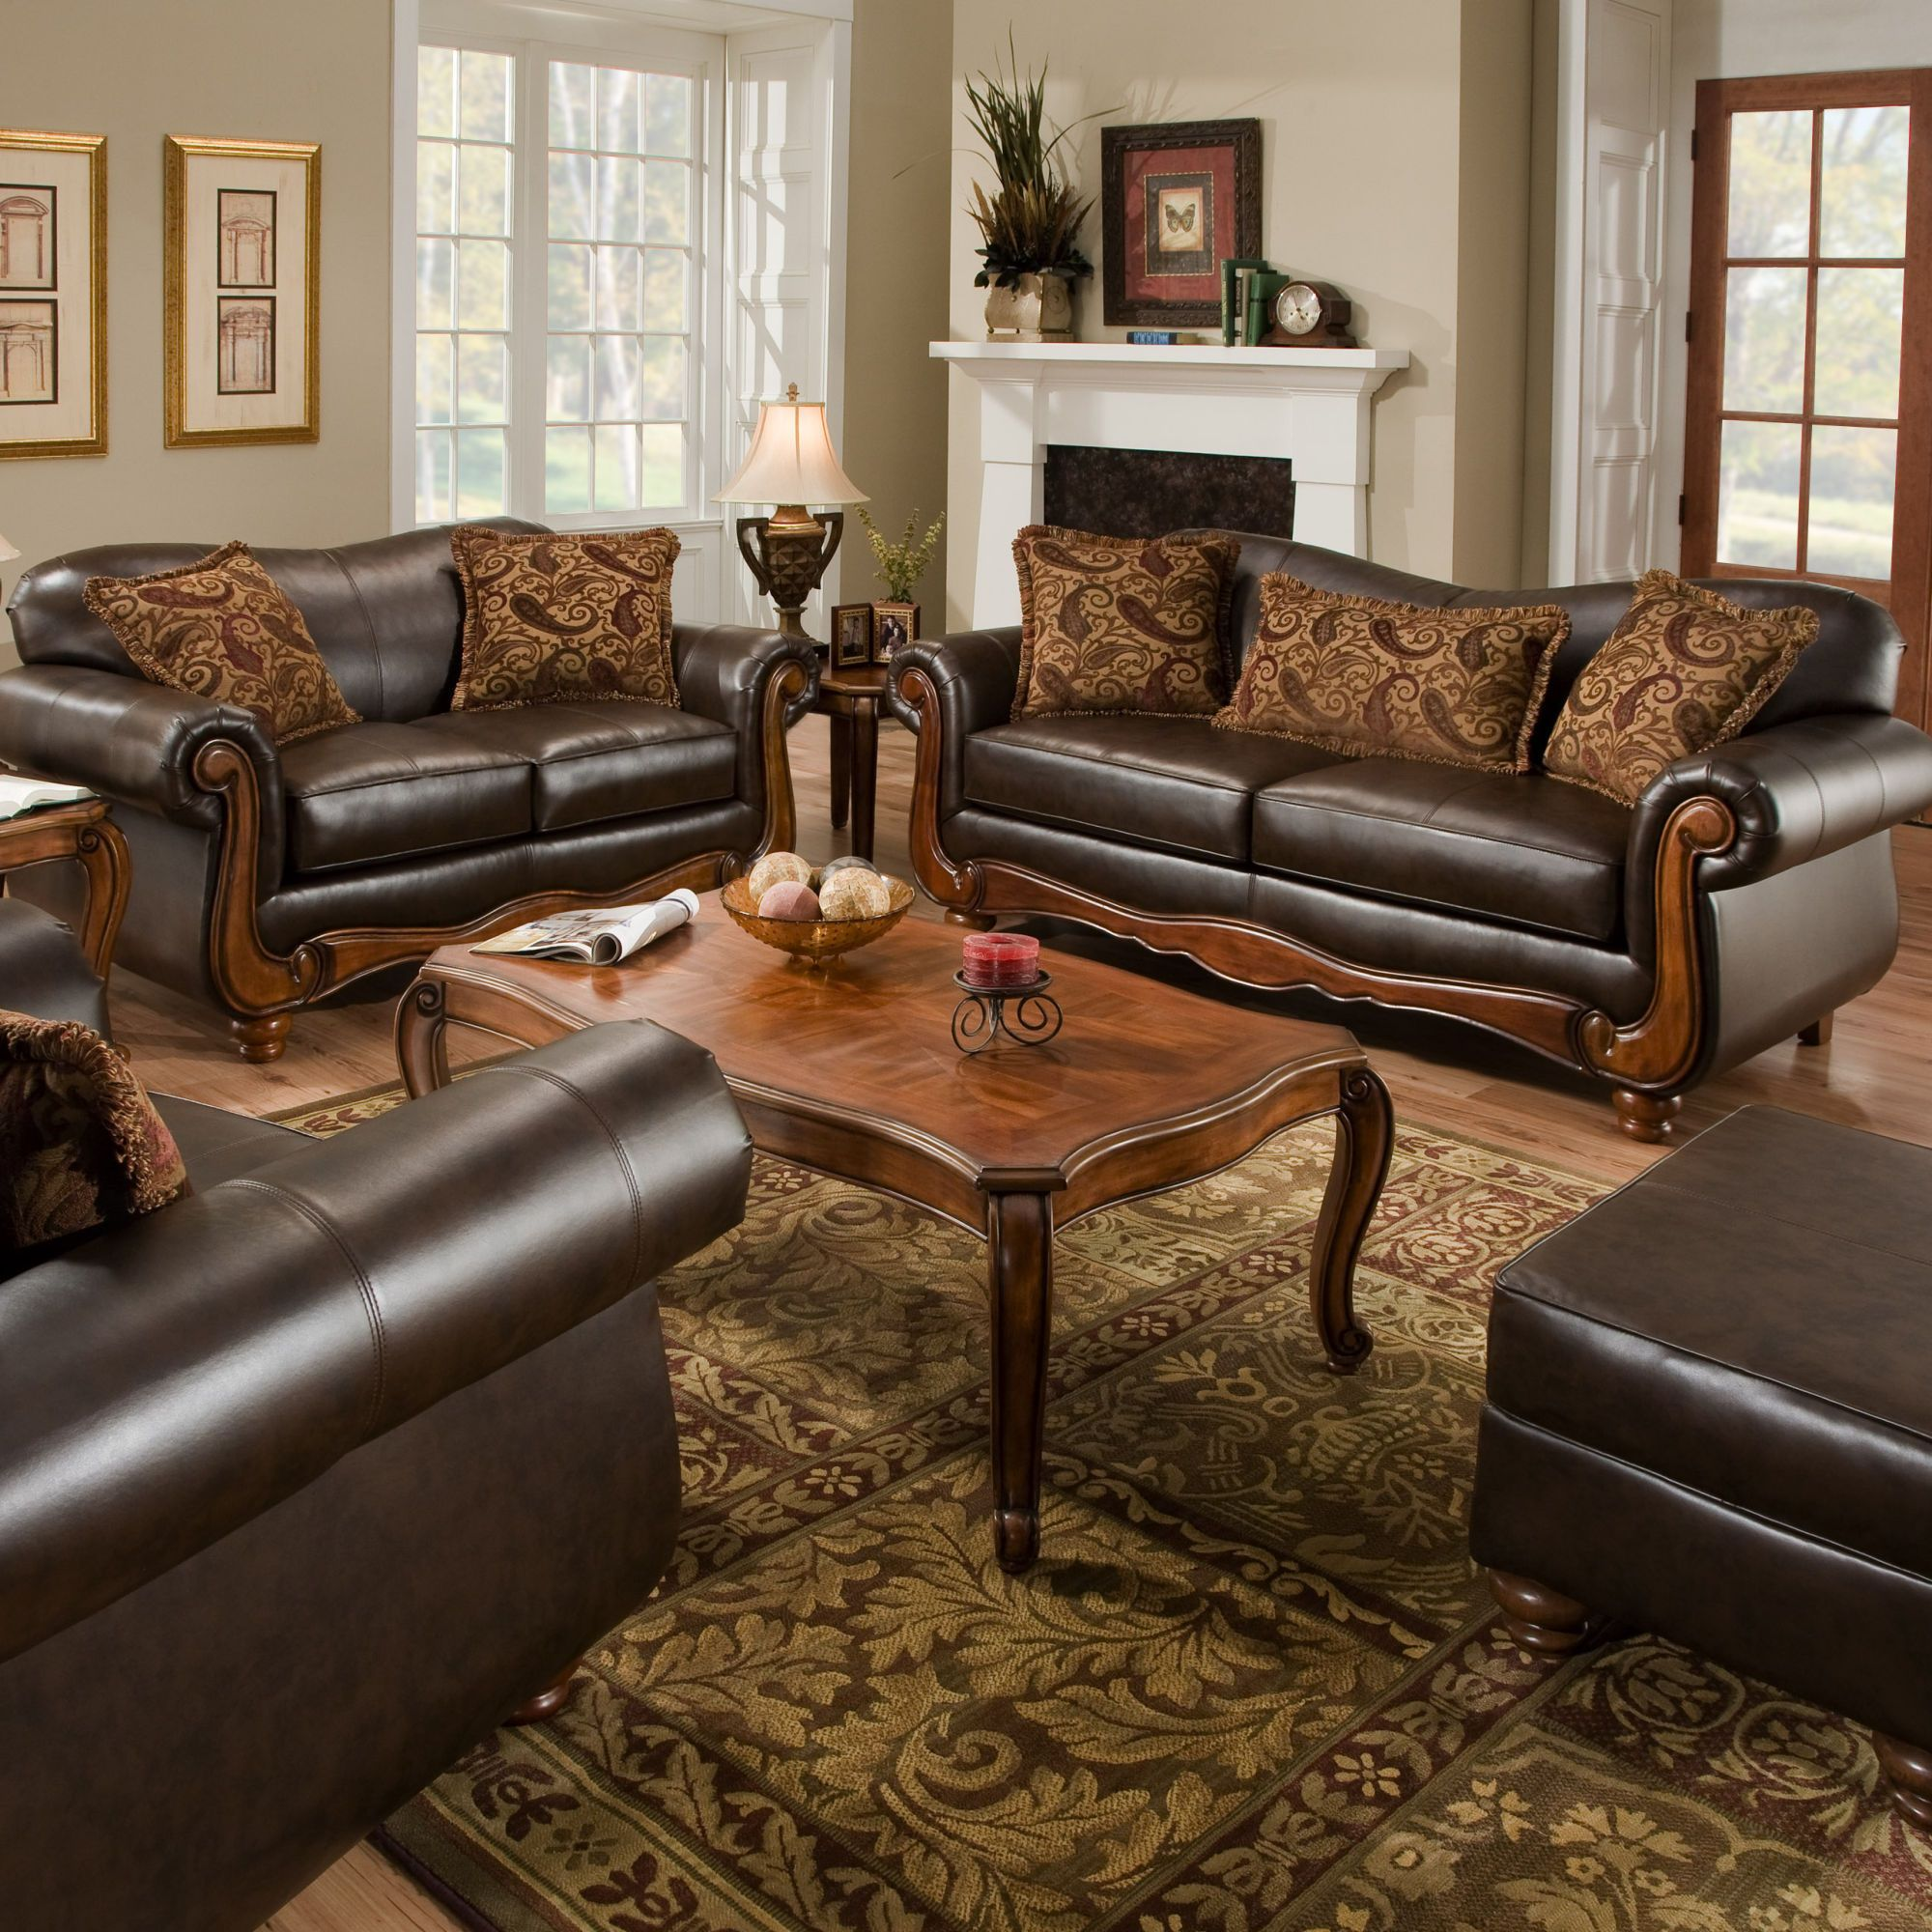 Leather Living Room Furniture: $1,300 2 Pc American Furniture Bentley Living Room